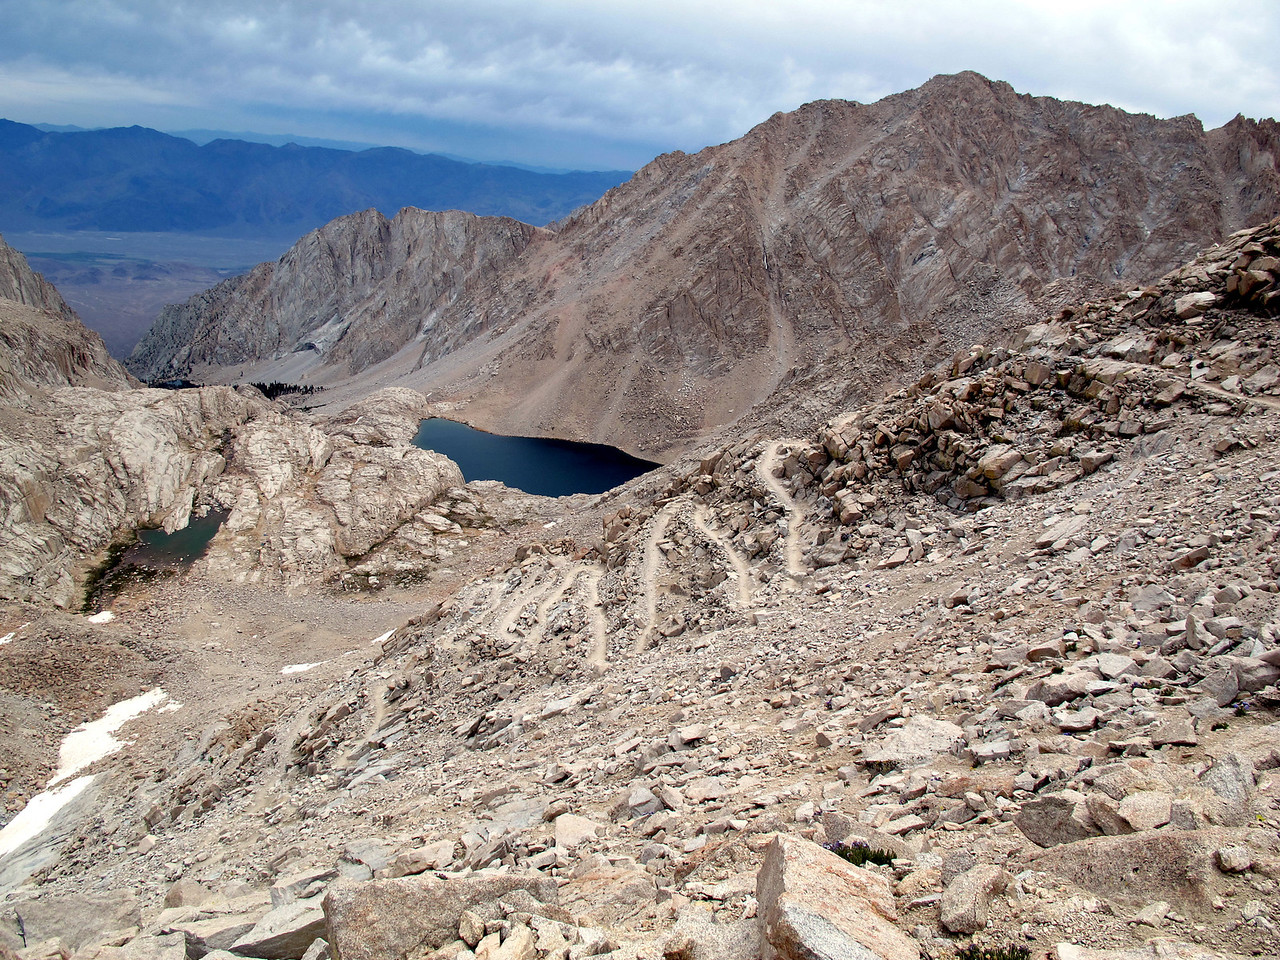 Part of the 97 switchbacks. The small lake on the middle left is Trail camp where we started from at 4:10 am.